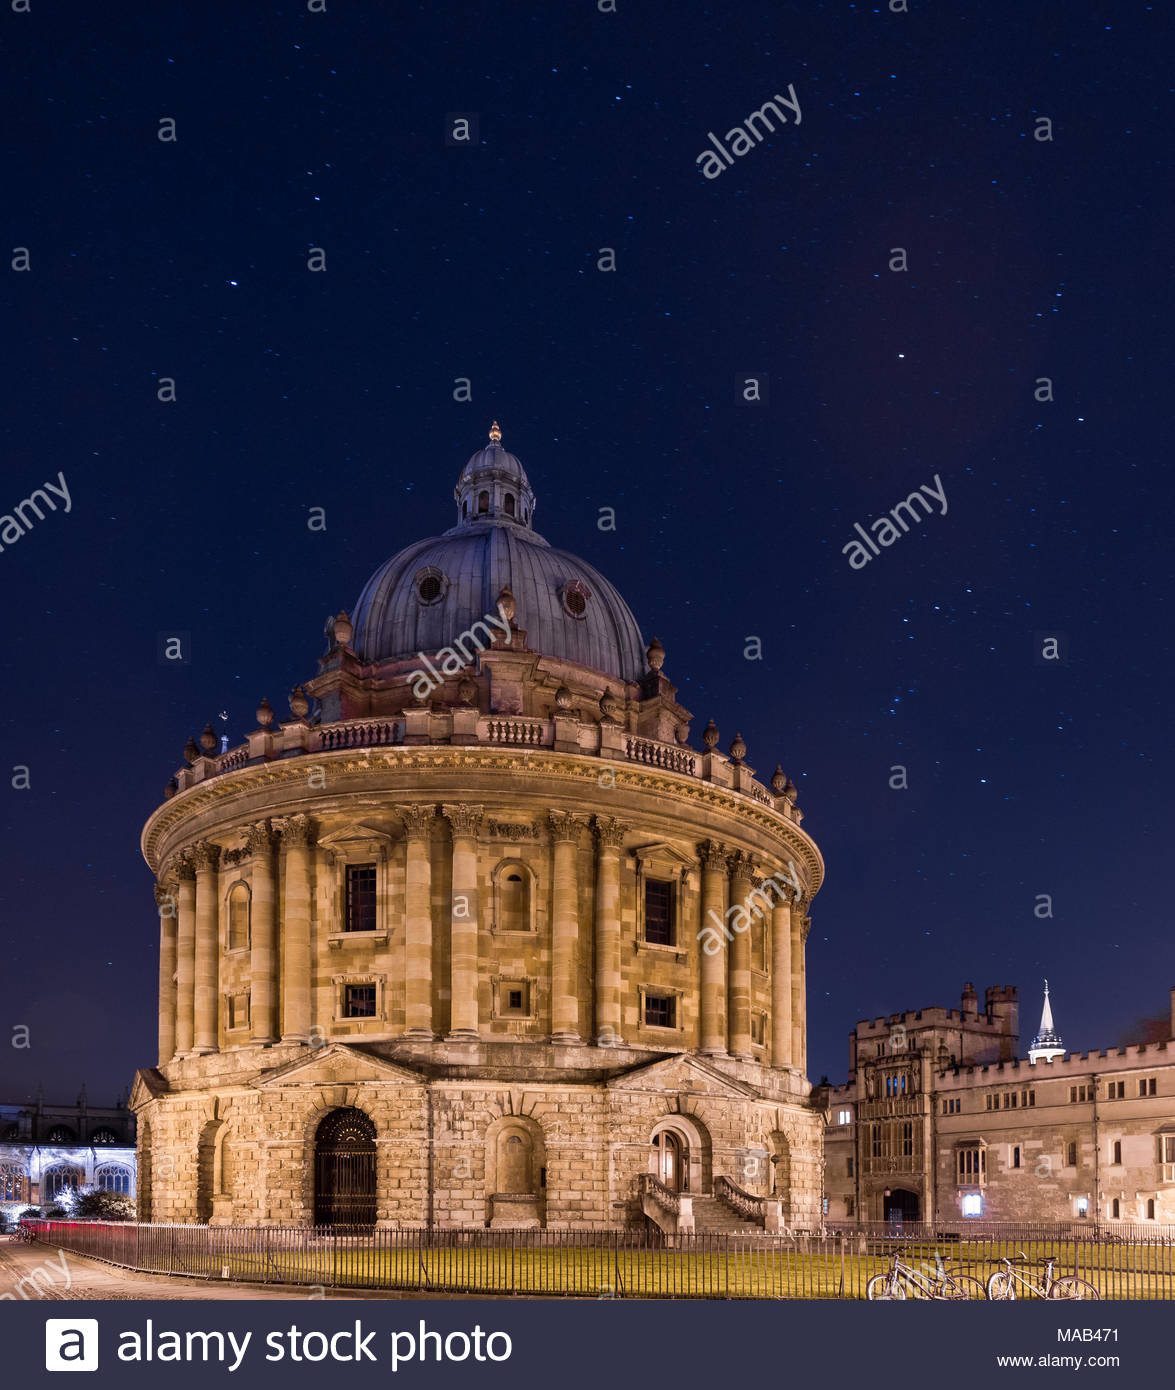 Radcliffe Camera at night, Bodleian Library, Oxford UK - Stock Image